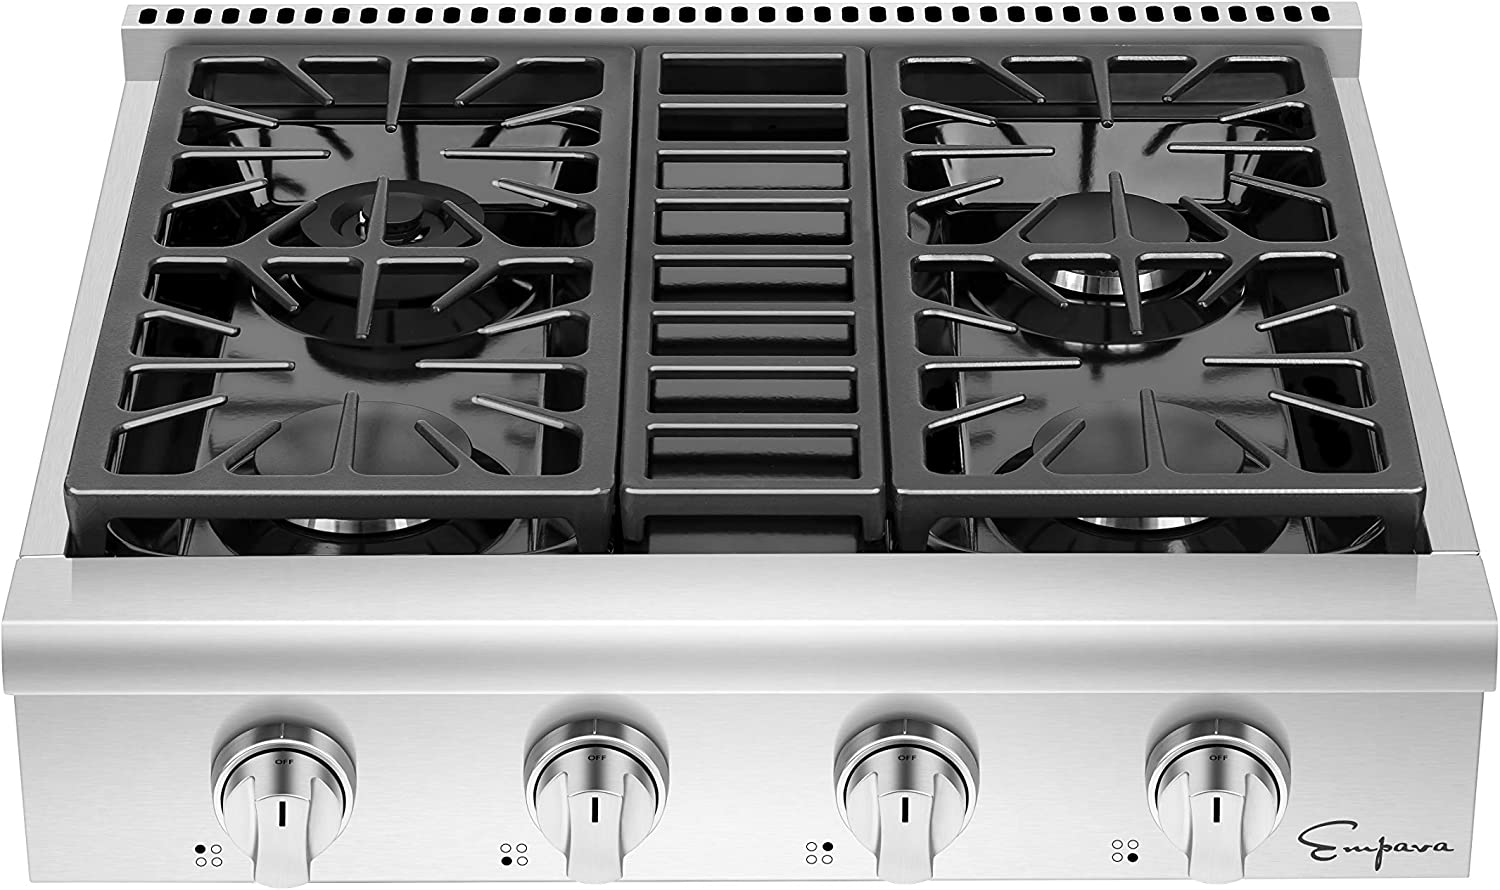 Empava 30 in. Pro-Style Professional Slide-in Natural Gas Rangetop with 4 Deep Recessed Sealed Ultra High-Low Burners-Heavy Duty Continuous Grates in Stainless Steel, 30 Inch, Silver